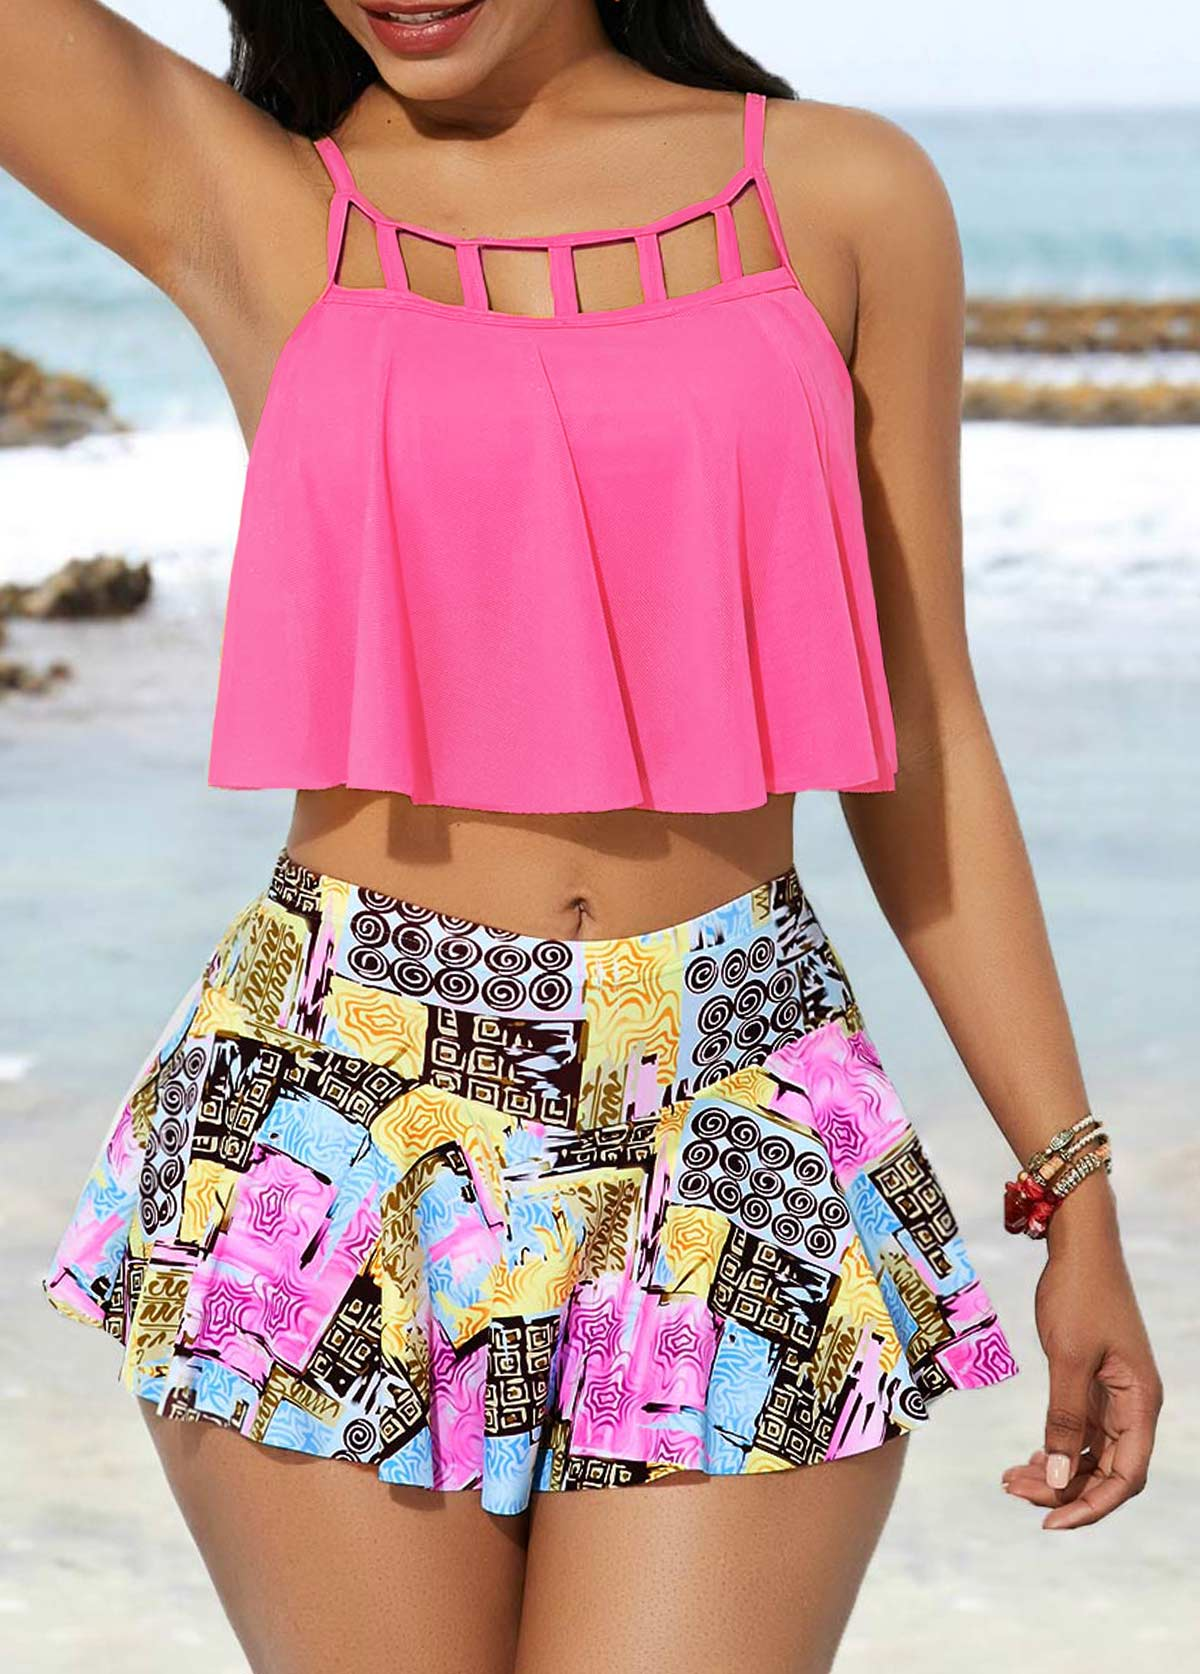 Cage Neck Swimwear Top and High Waist Pantskirt